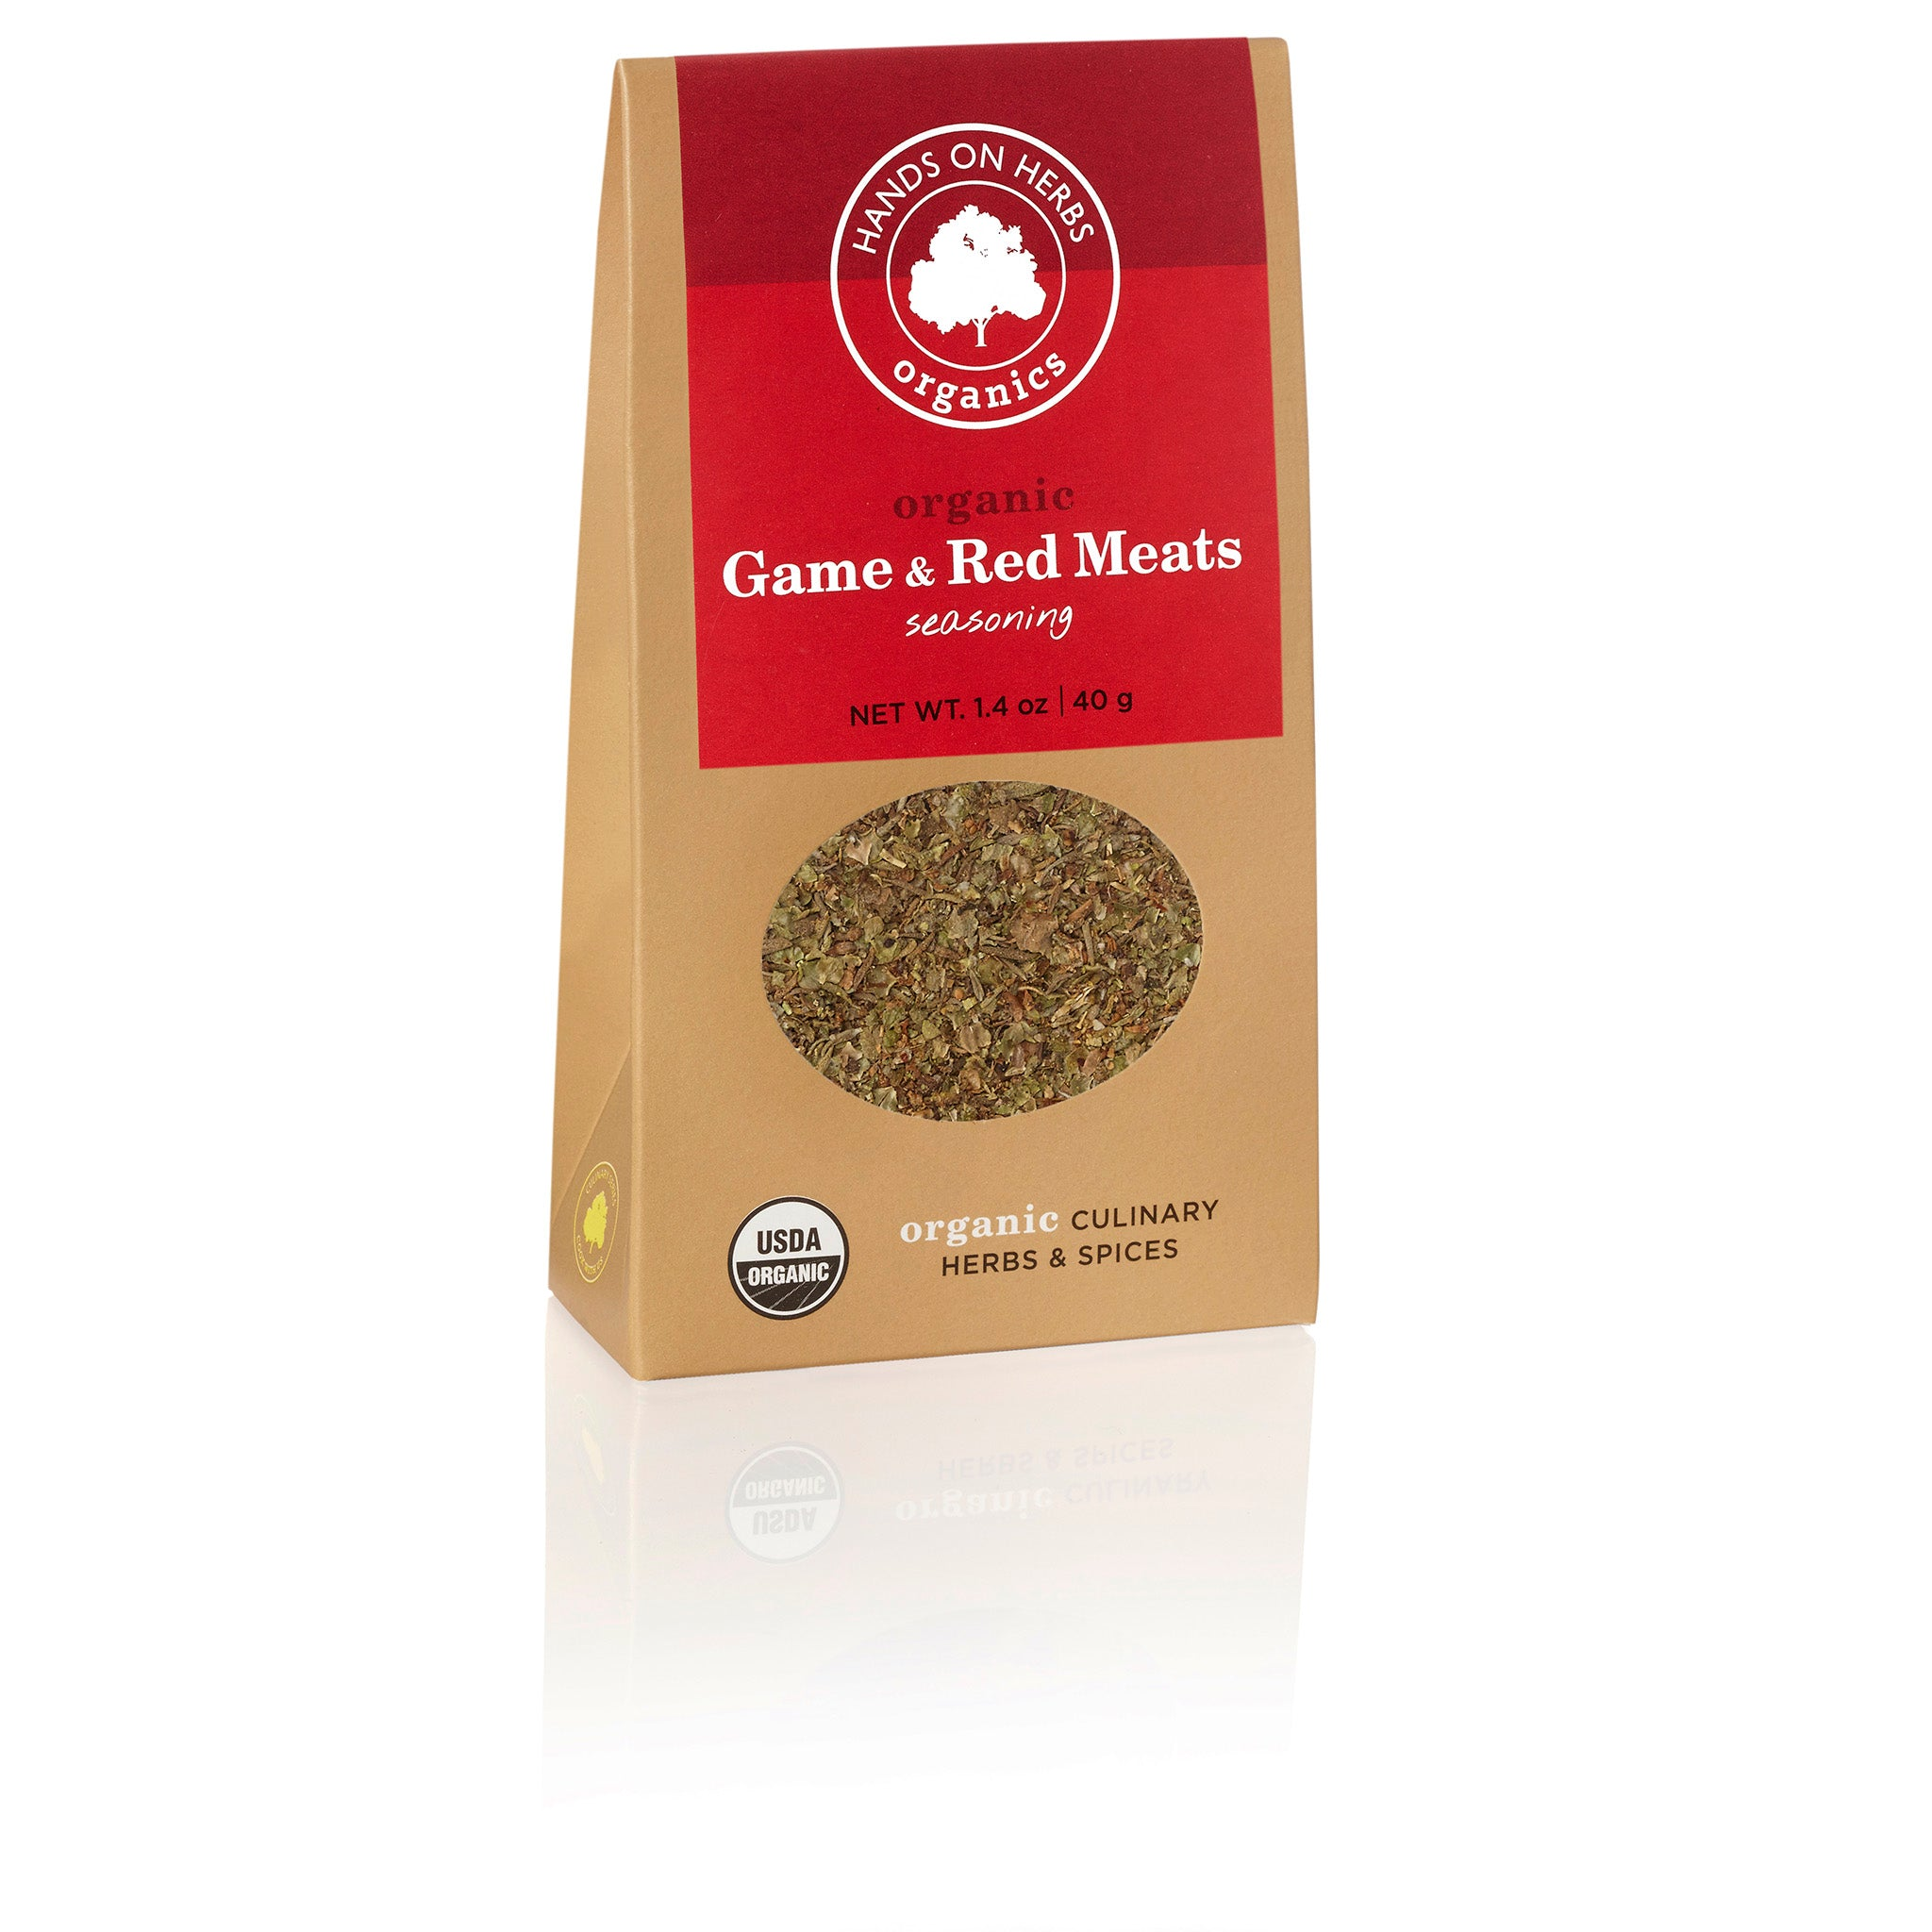 Game & Red Meats Seasoning